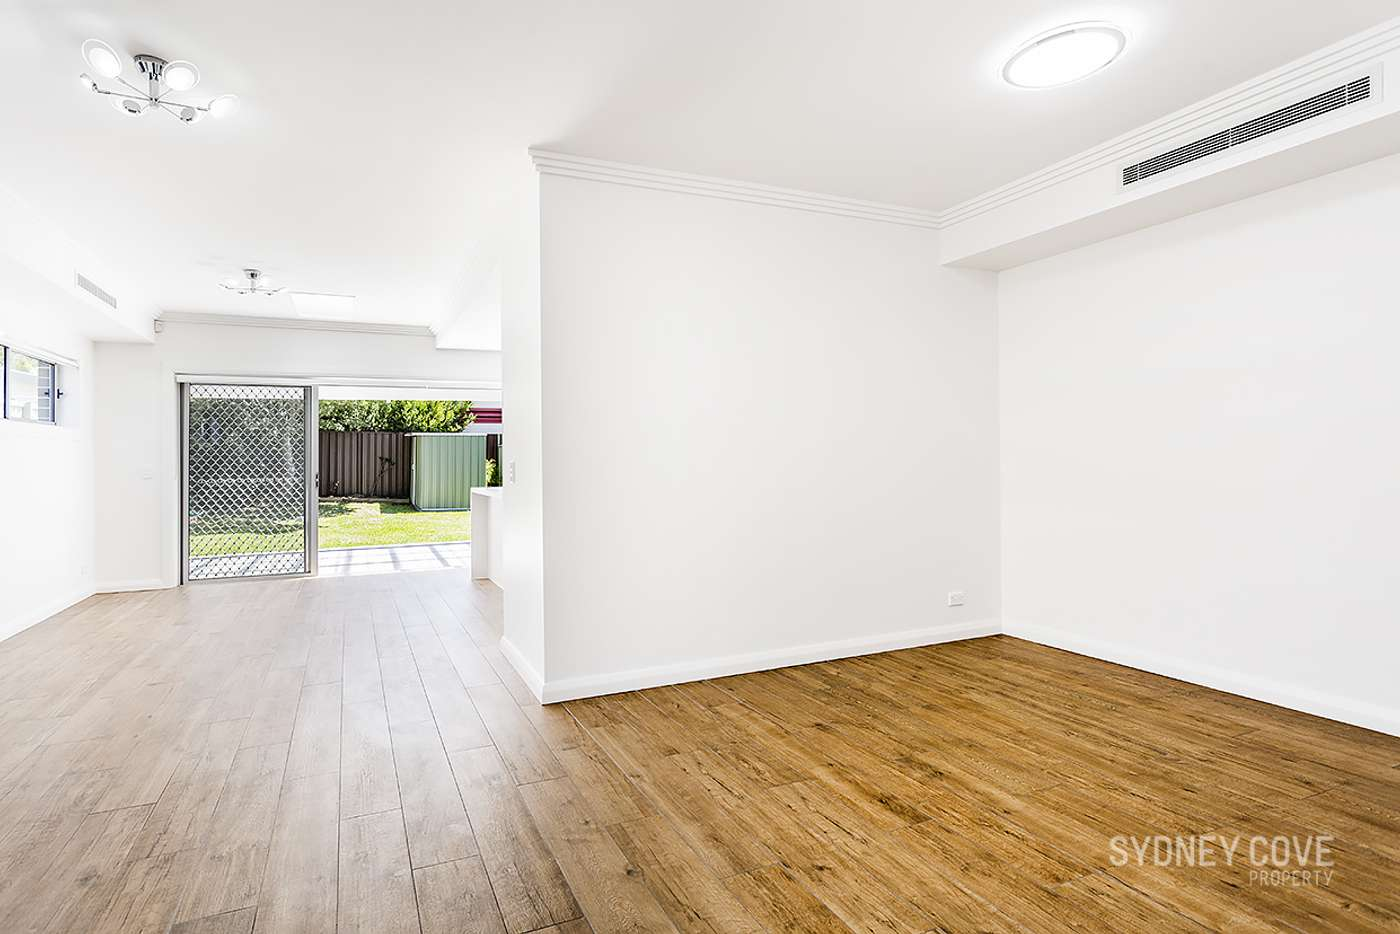 Main view of Homely house listing, 9B Tergur Crescent, Caringbah NSW 2229